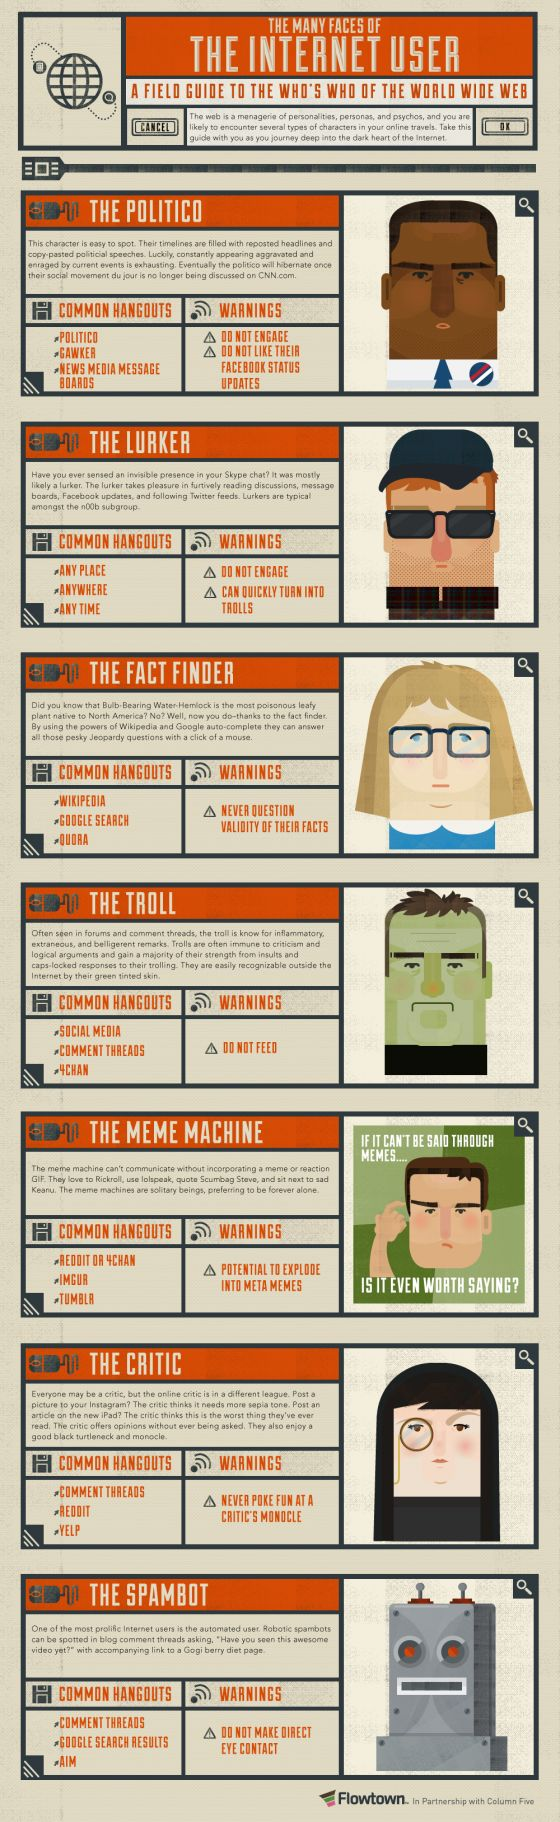 The Many Faces of the Internet User: Inspiration Wall, Internet Marketing, Community Management, The Faces, Social Media, Internet User, Even, Socialmedia, Infographic